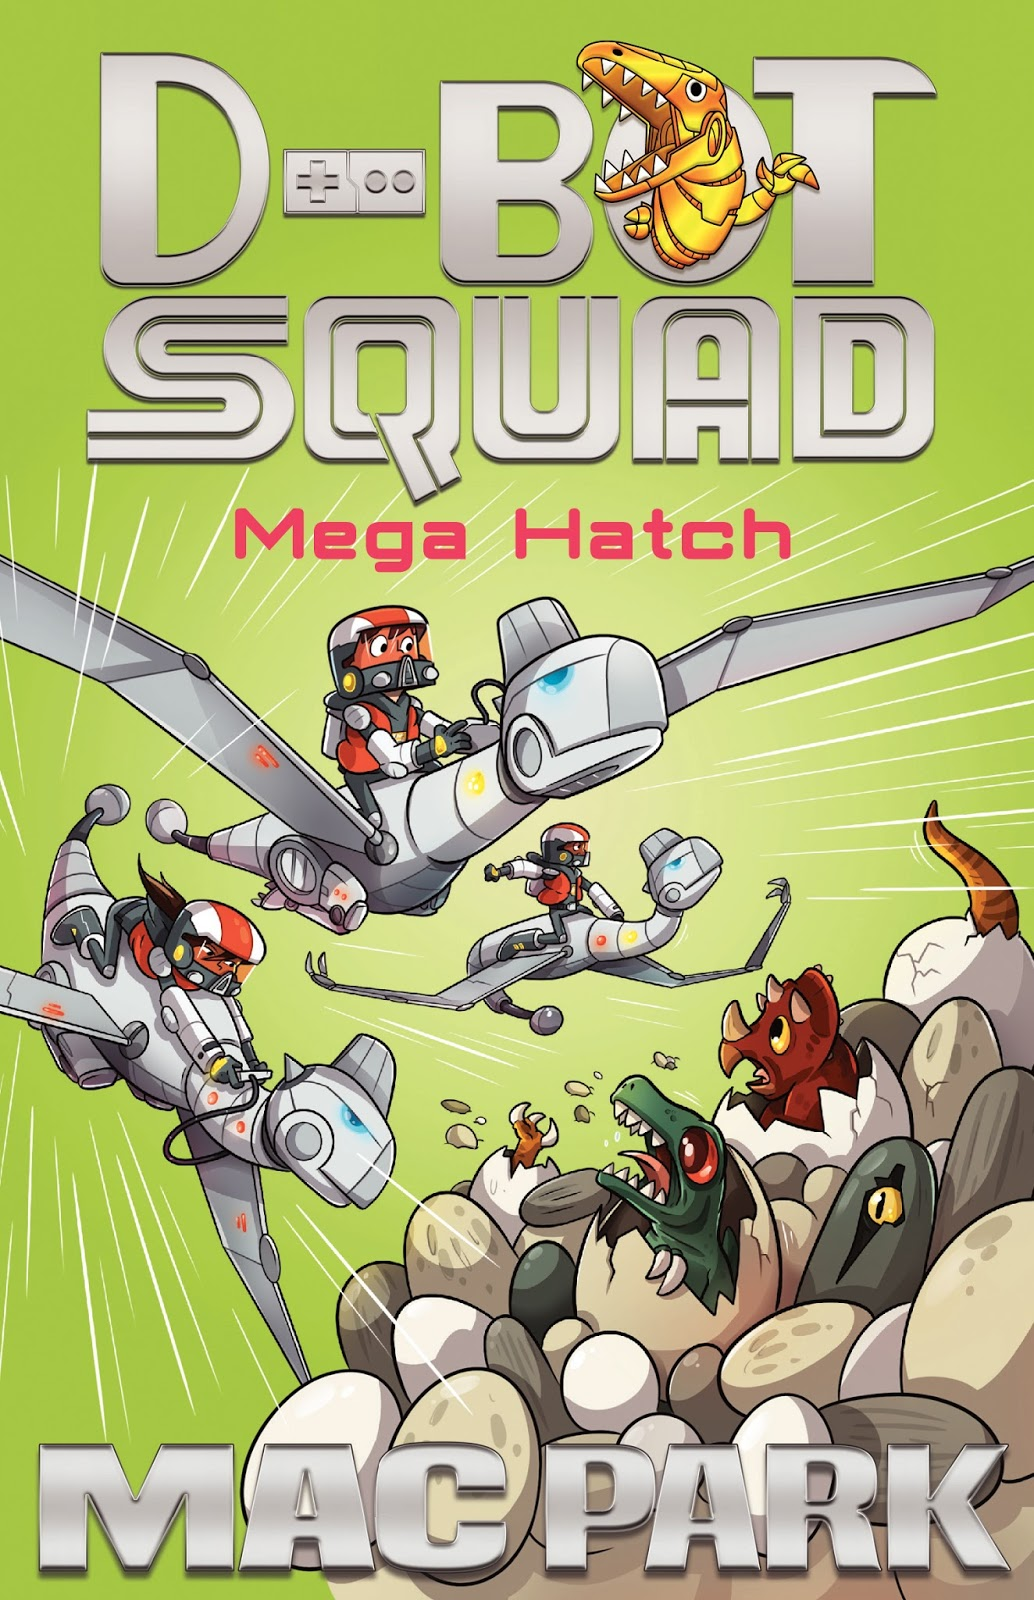 Kids' Book Review: Review: D-Bot Squad Mega Hatch (#7) and